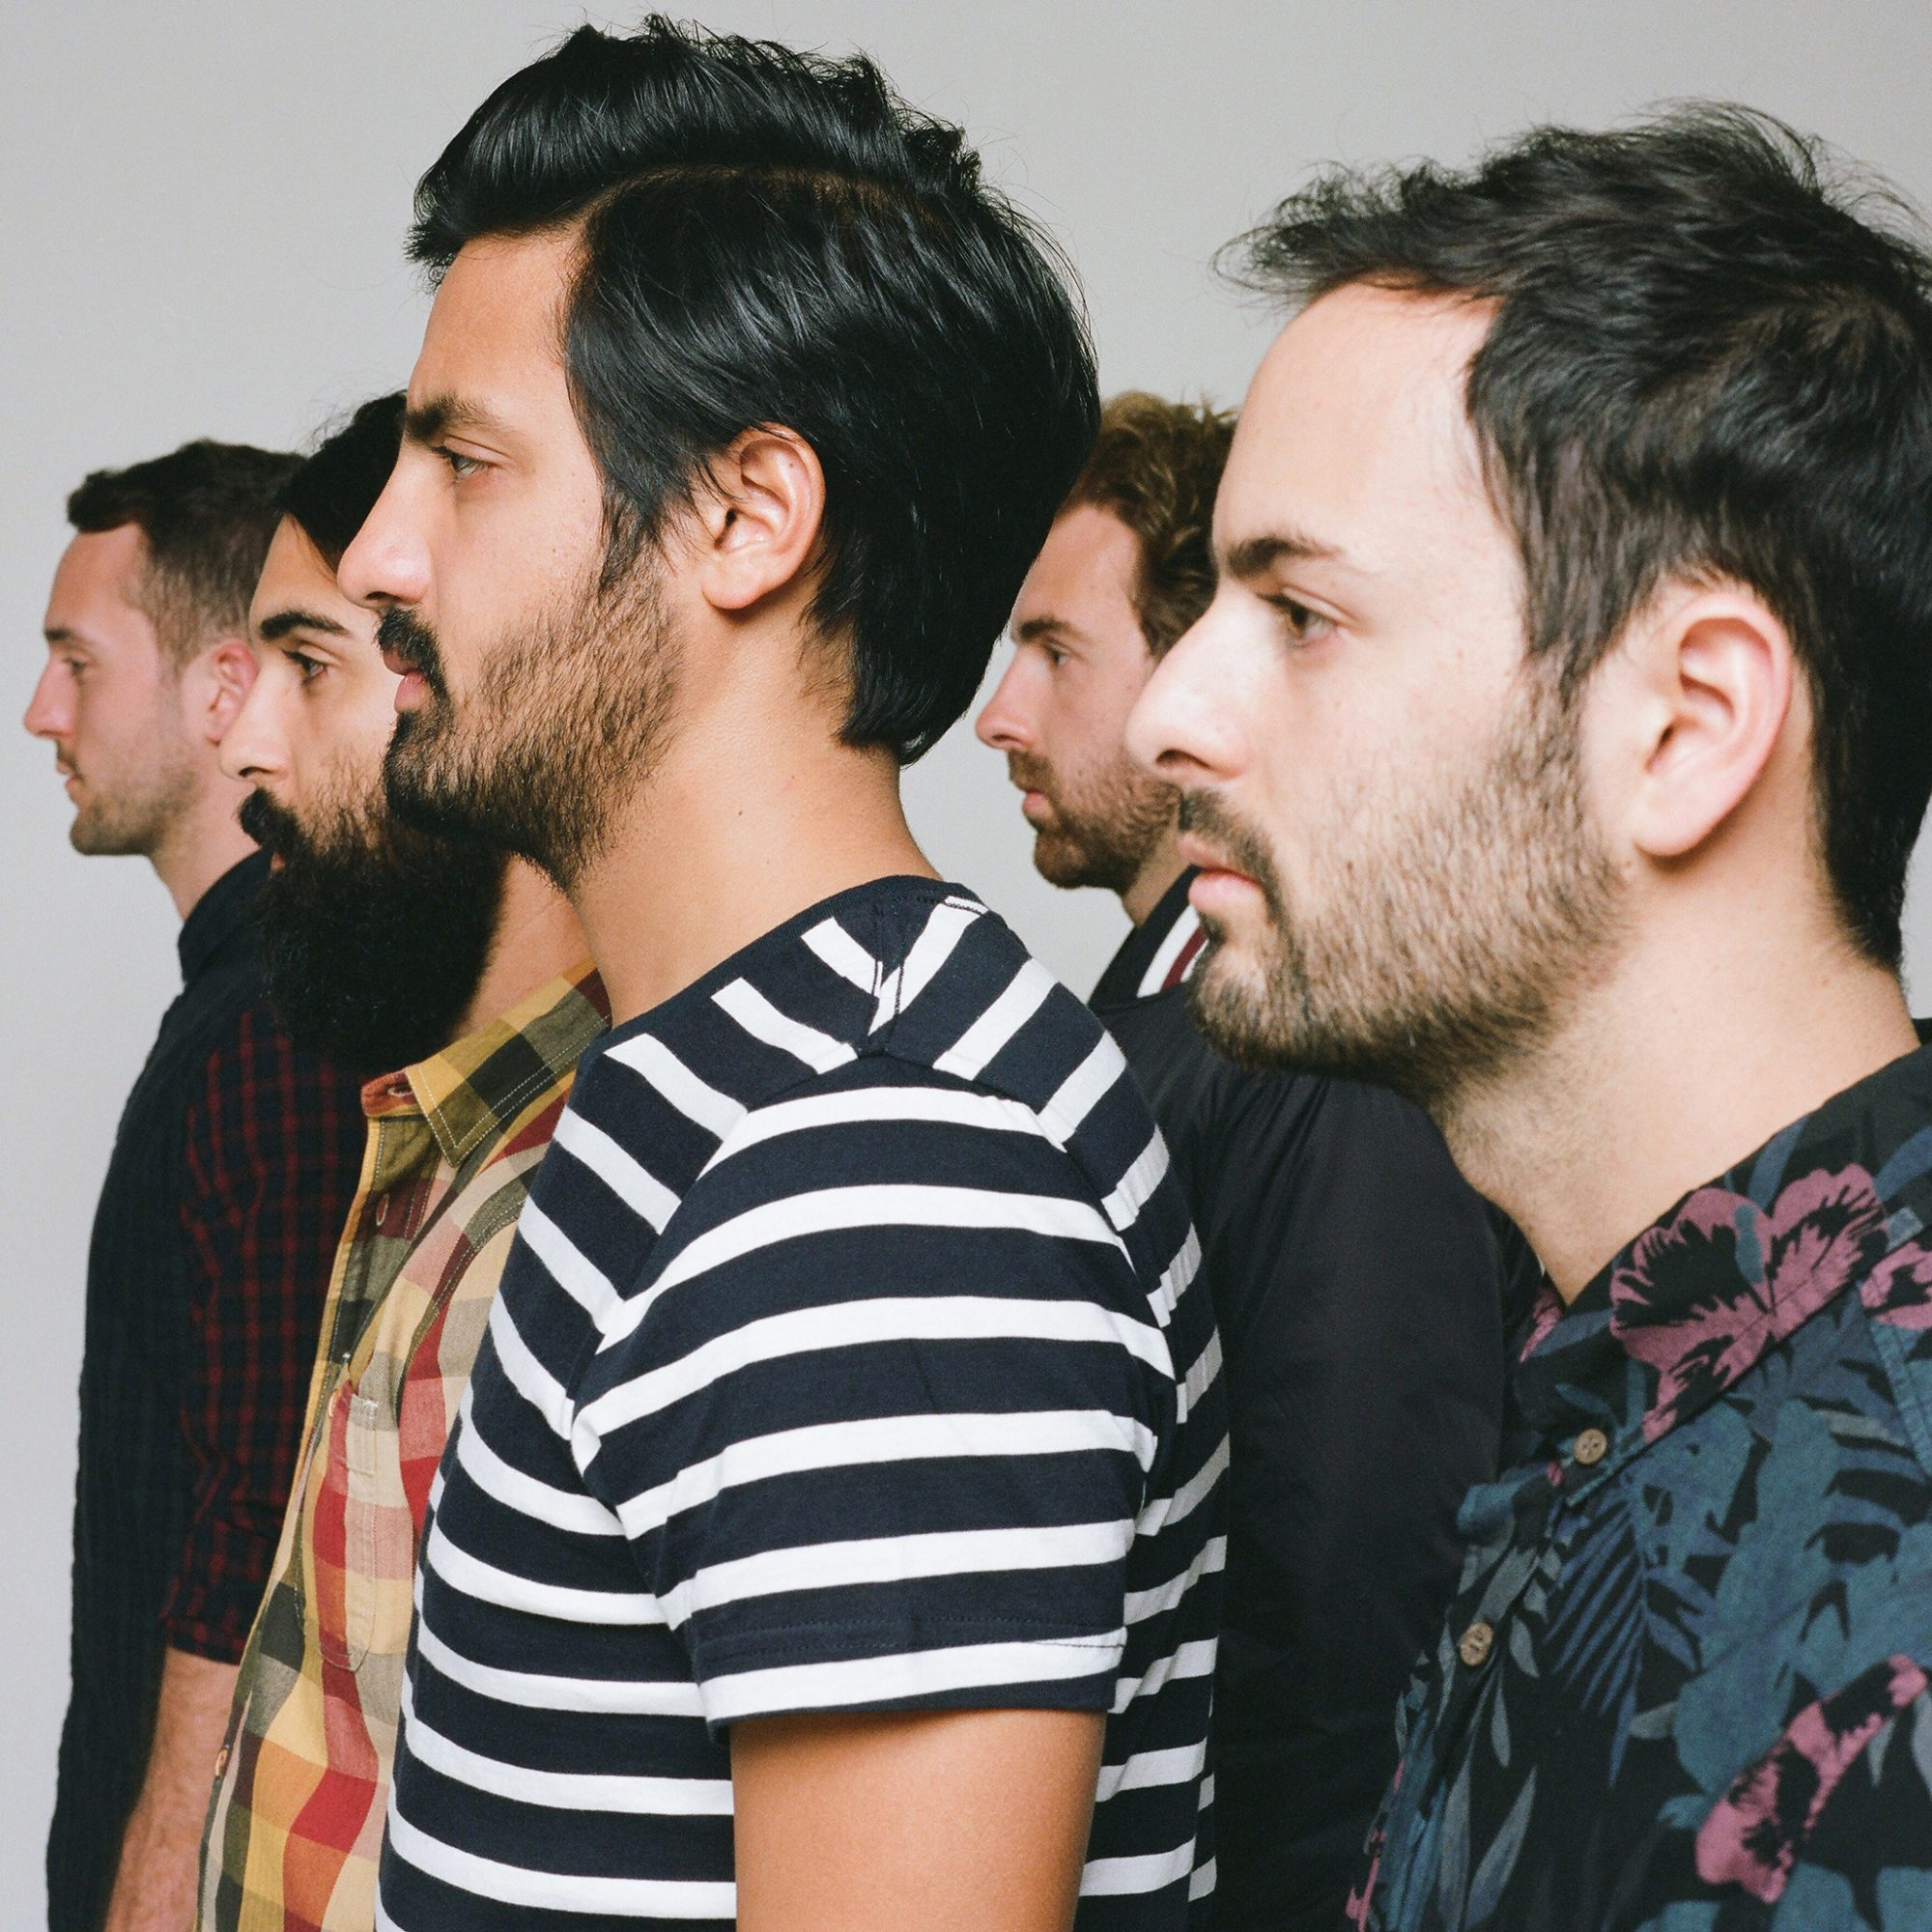 FWX DREAM RIDER YOUNG THE GIANT